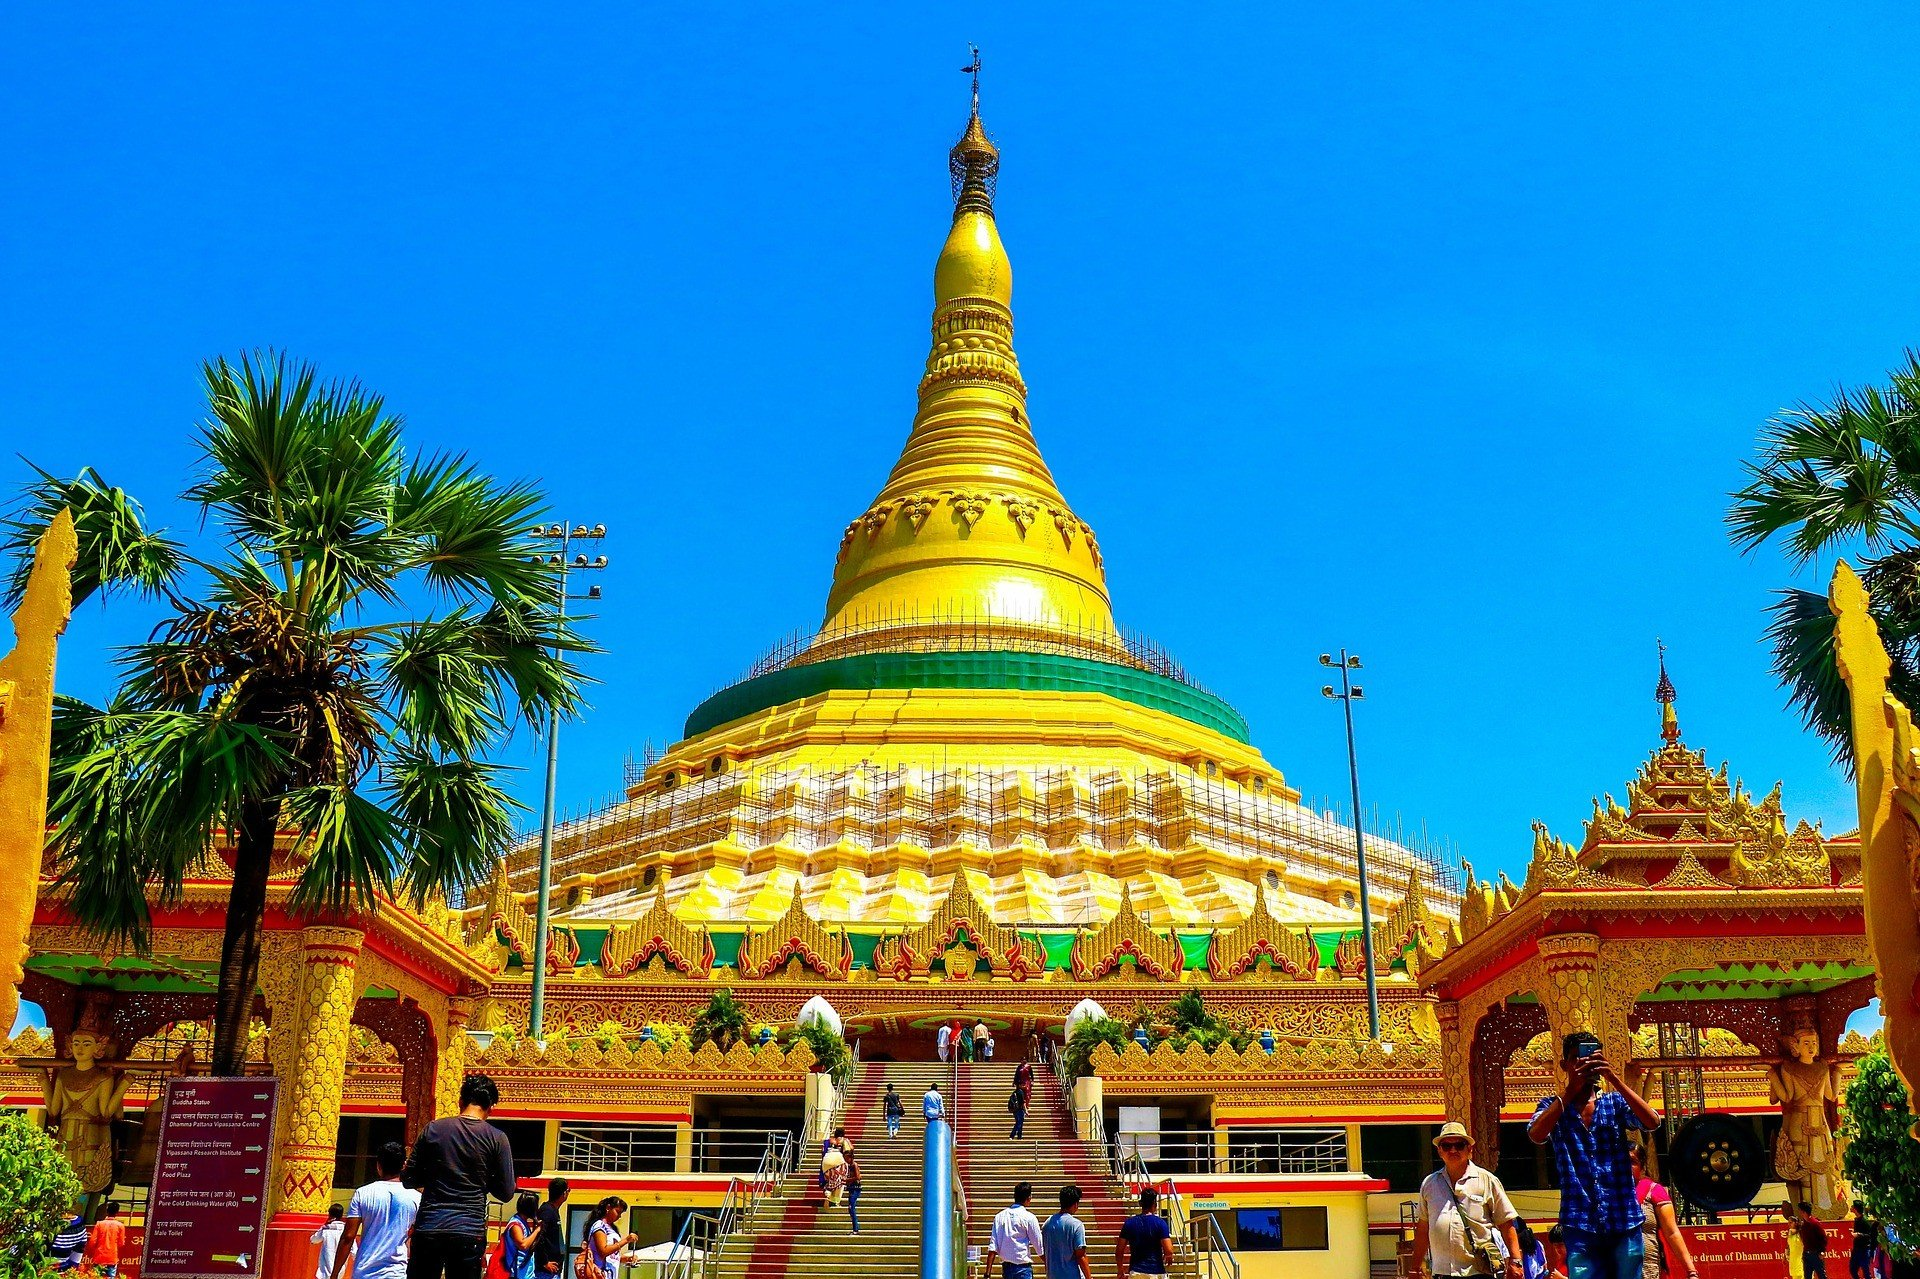 Global Vipassana Pagoda in Mumbai